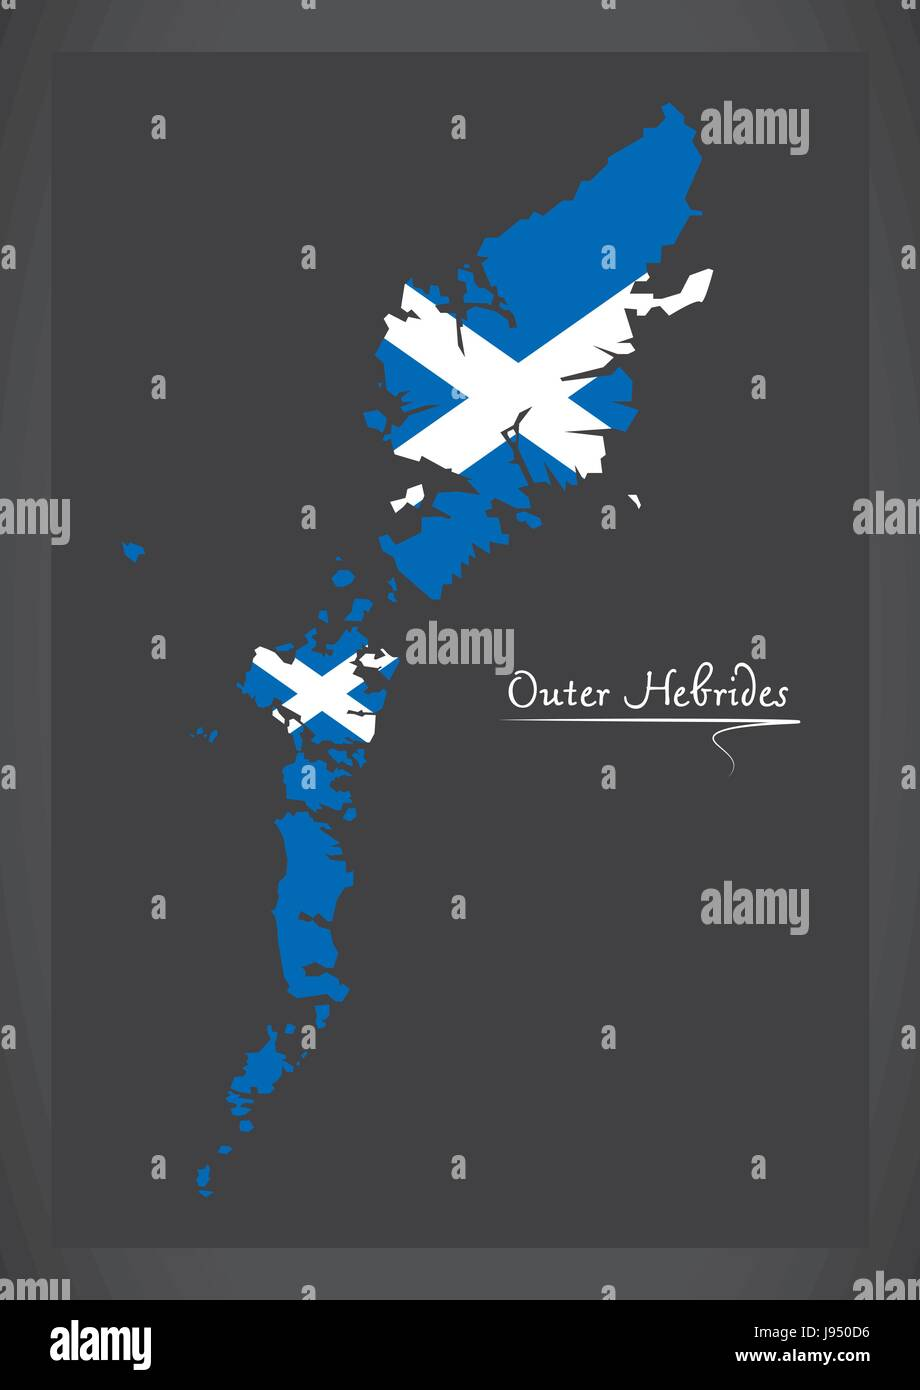 Outer Hebrides map with Scottish national flag illustration - Stock Vector